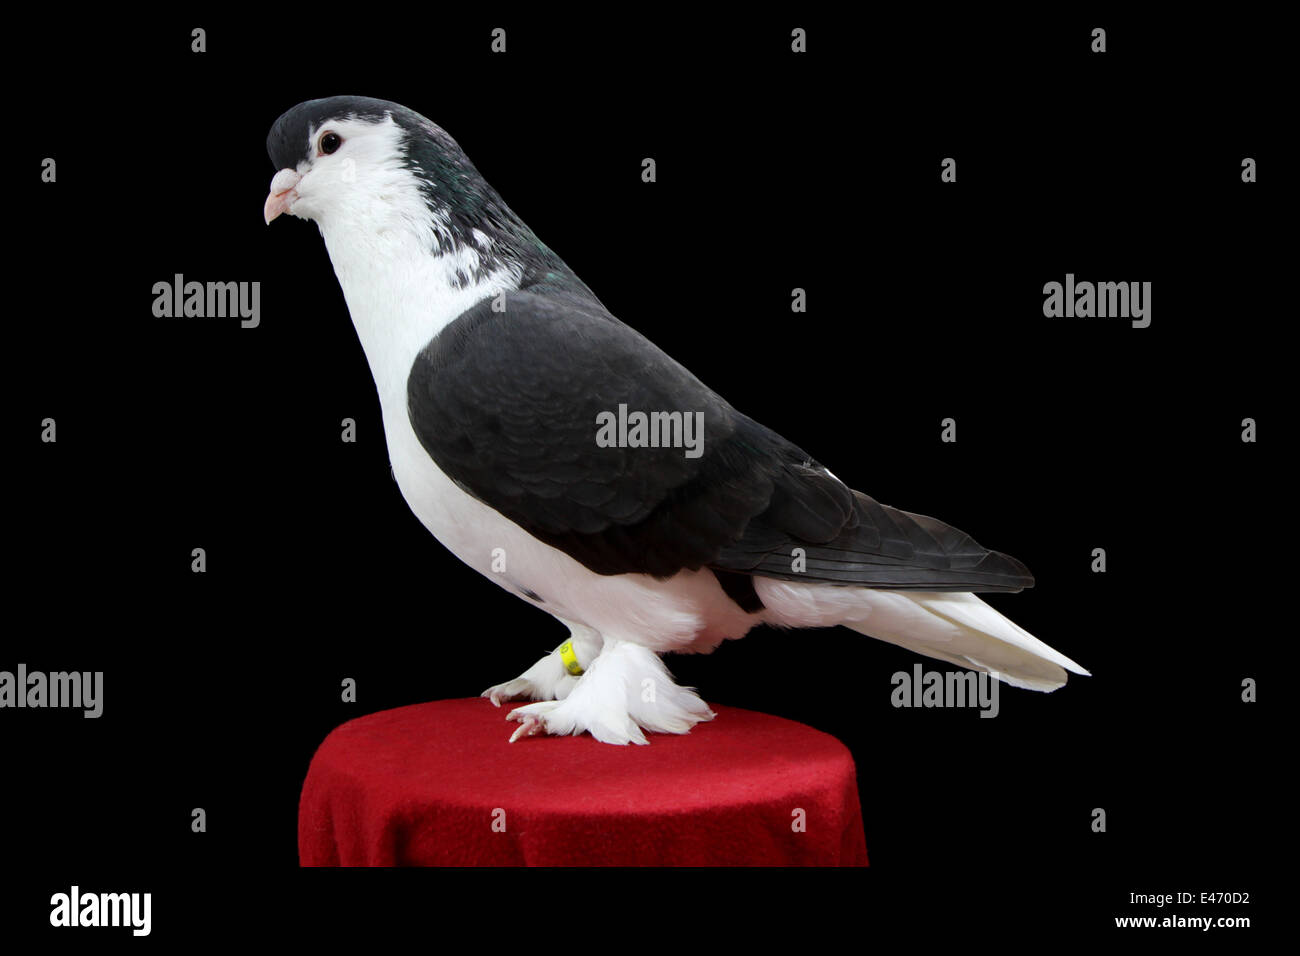 A Lahore, a breed of fancy pigeon, at the Faircount Pigeon Show, Ansonia, Connecticut, U.S.A. - Stock Image